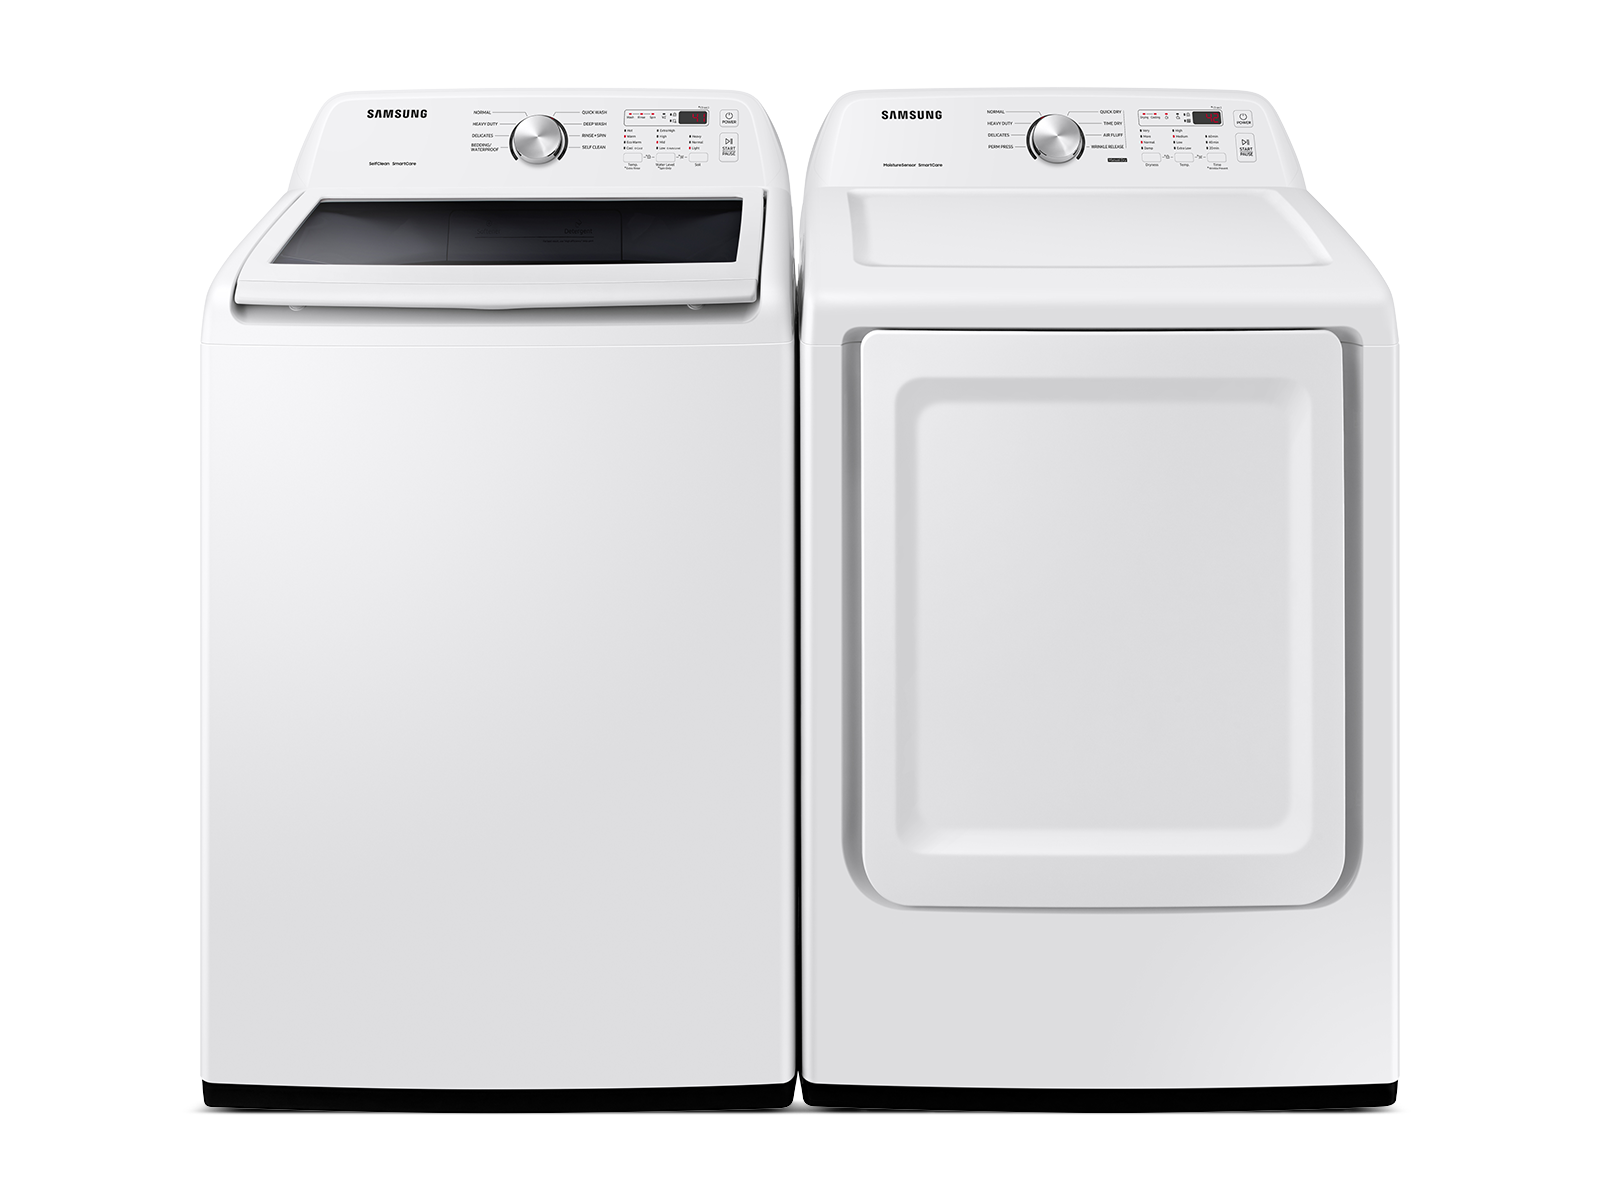 Top Load Washer & Dryer Set with Vibration Reduction Technology+ and Sensor Dry in White